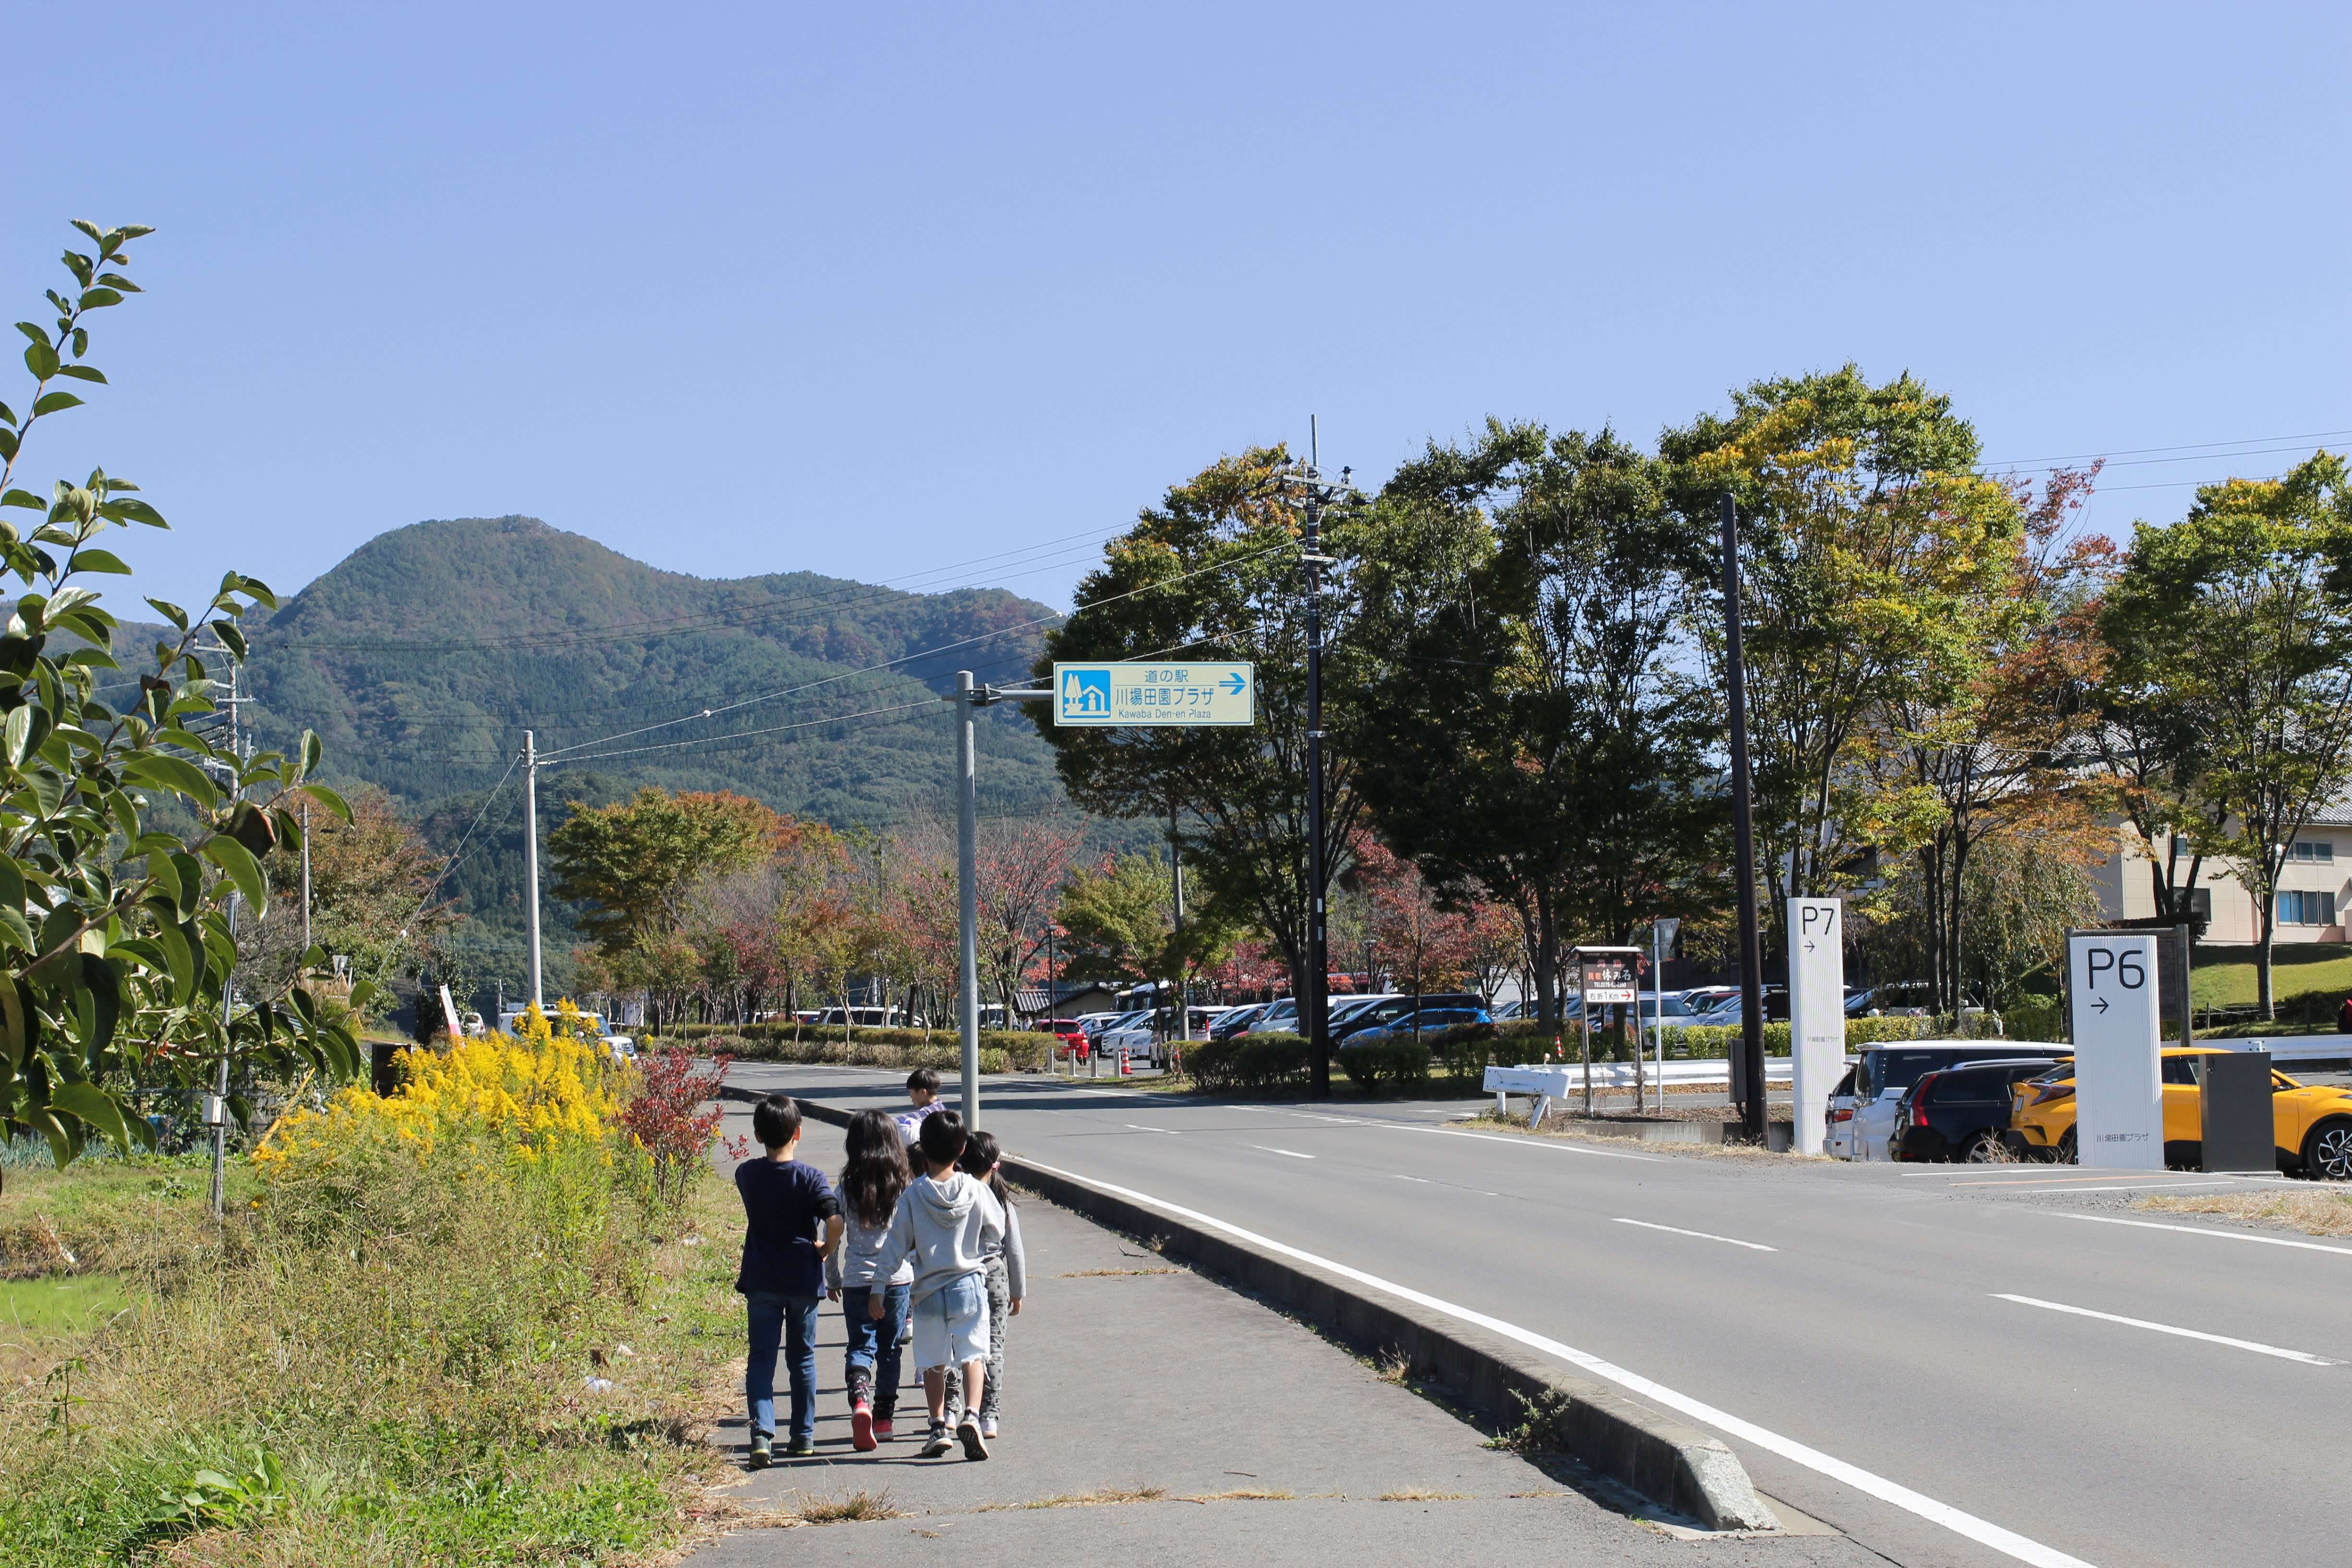 Akari Campsite on the side of a road, opposite parking 6 and 7 of Kawaba Denen Plaza